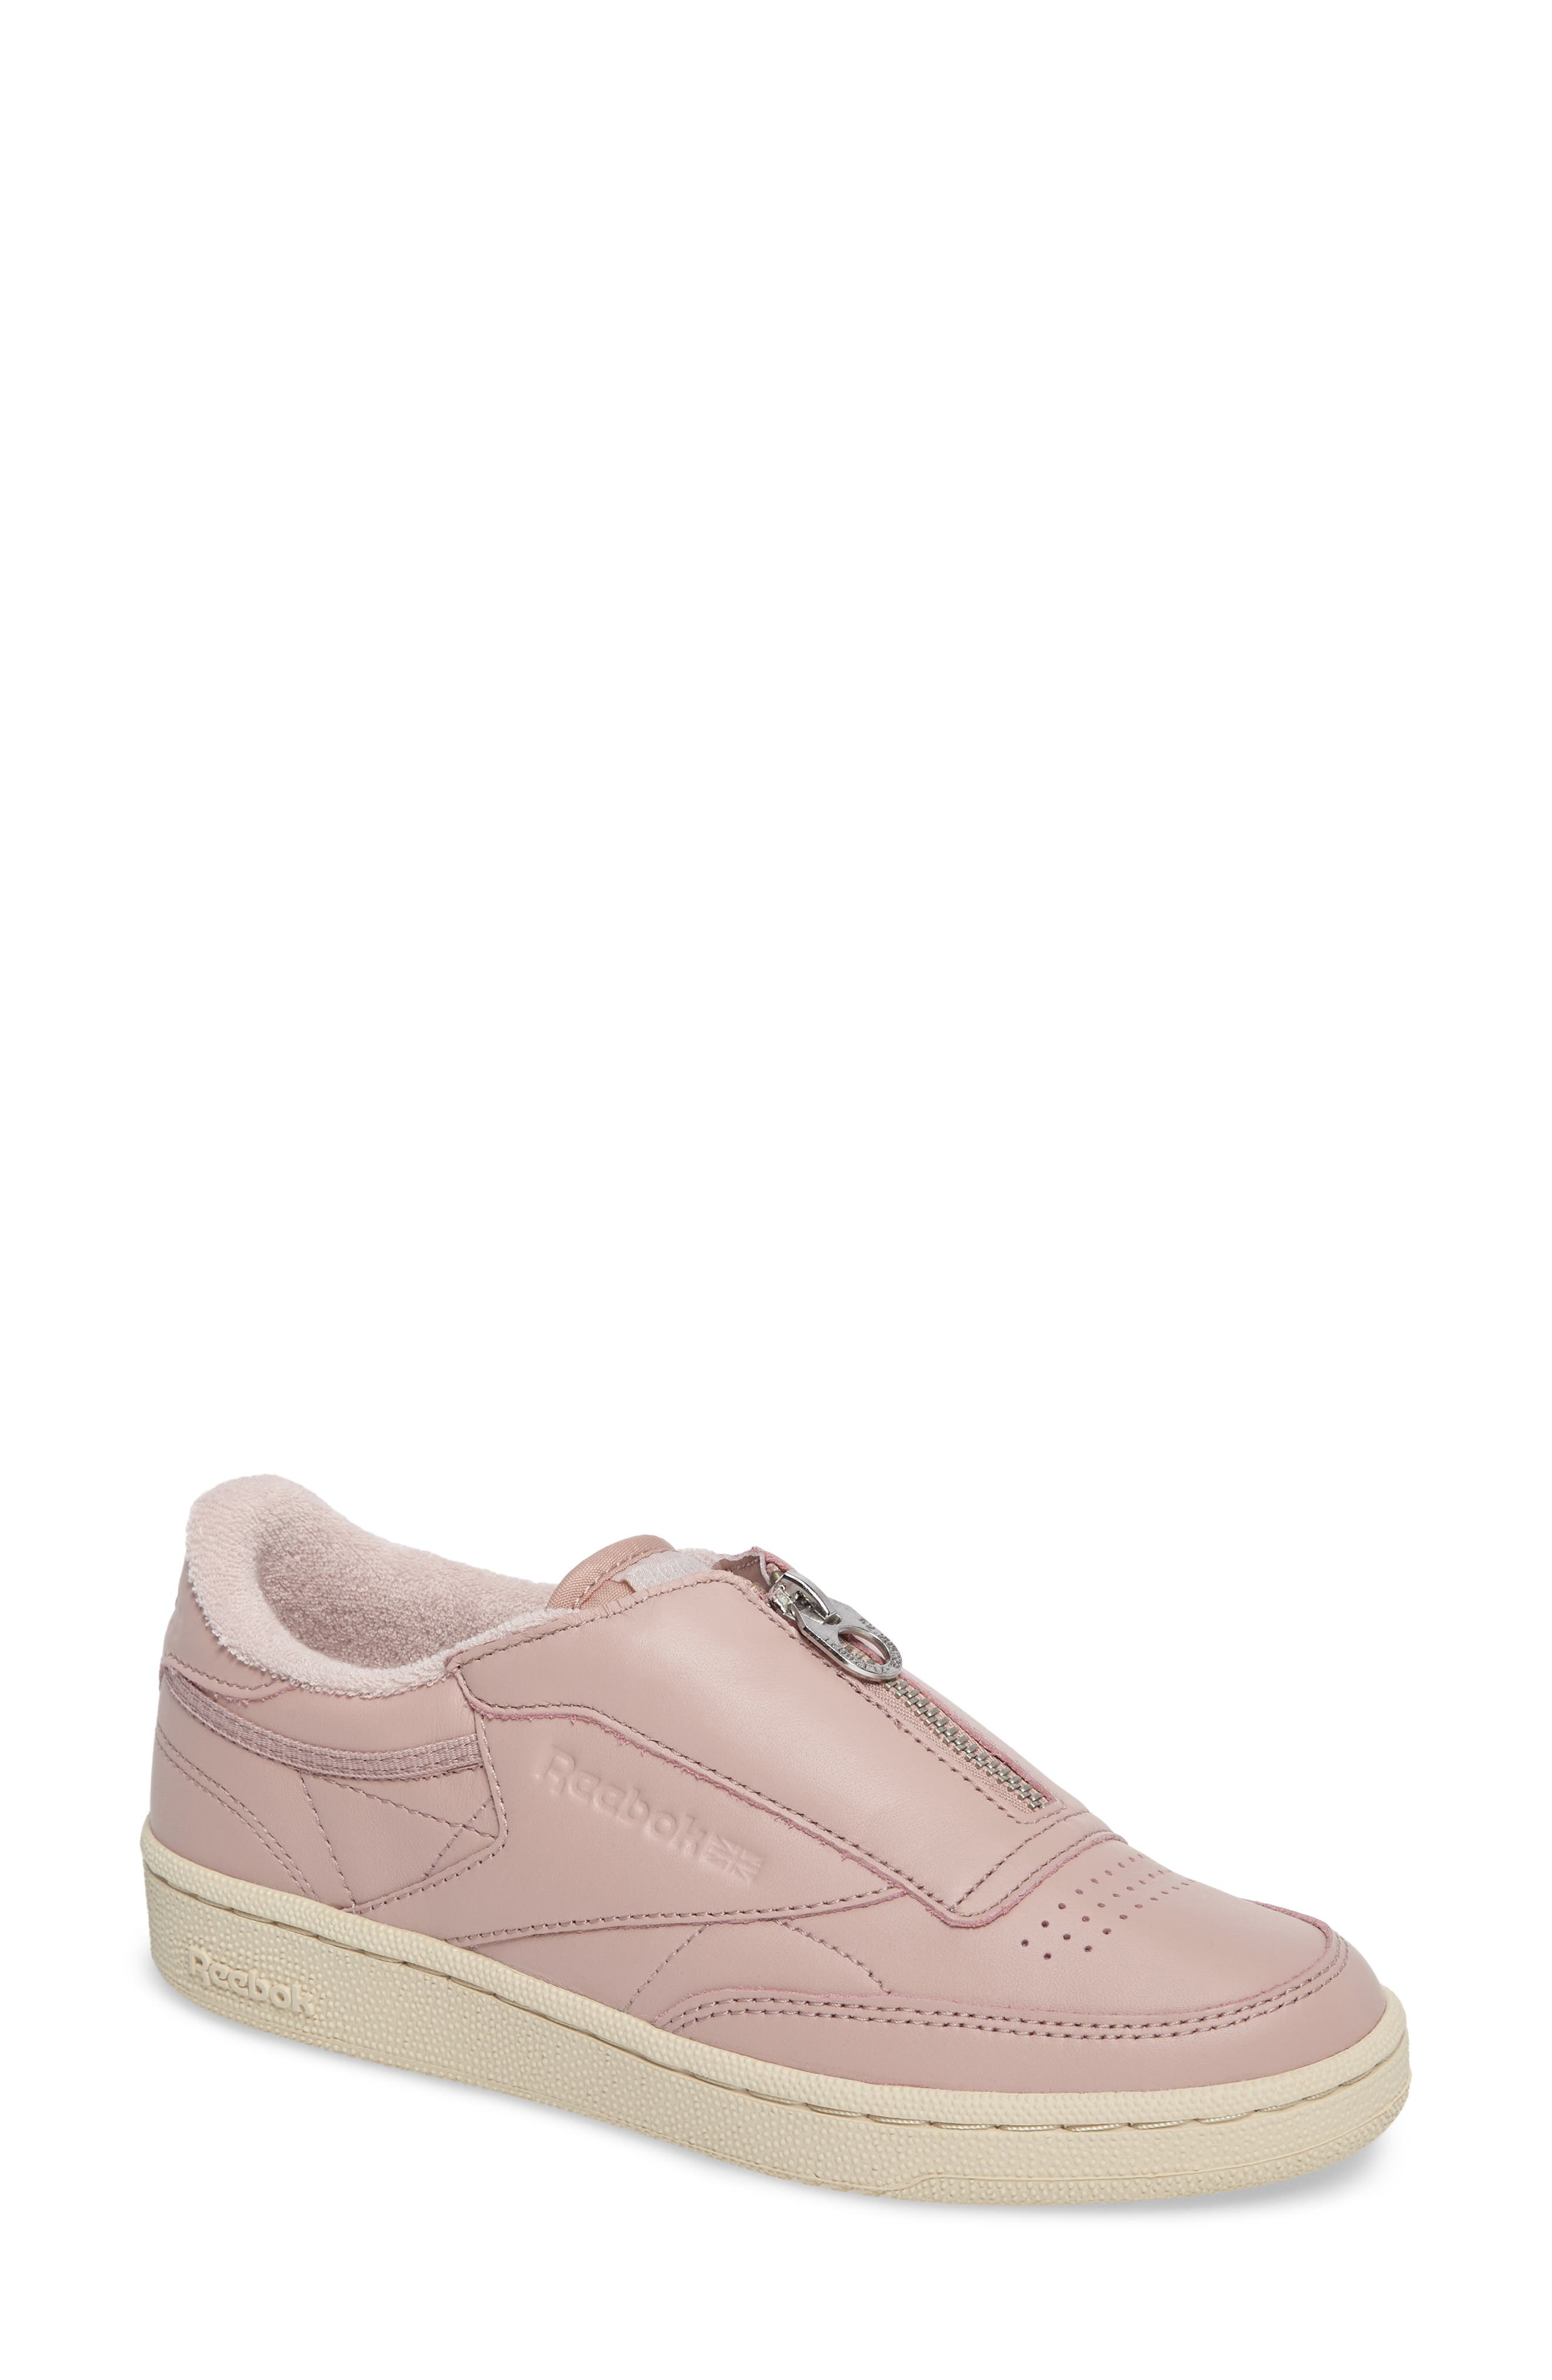 Alternate Image 1 Selected - Reebok Club C85 Sneaker (Women)